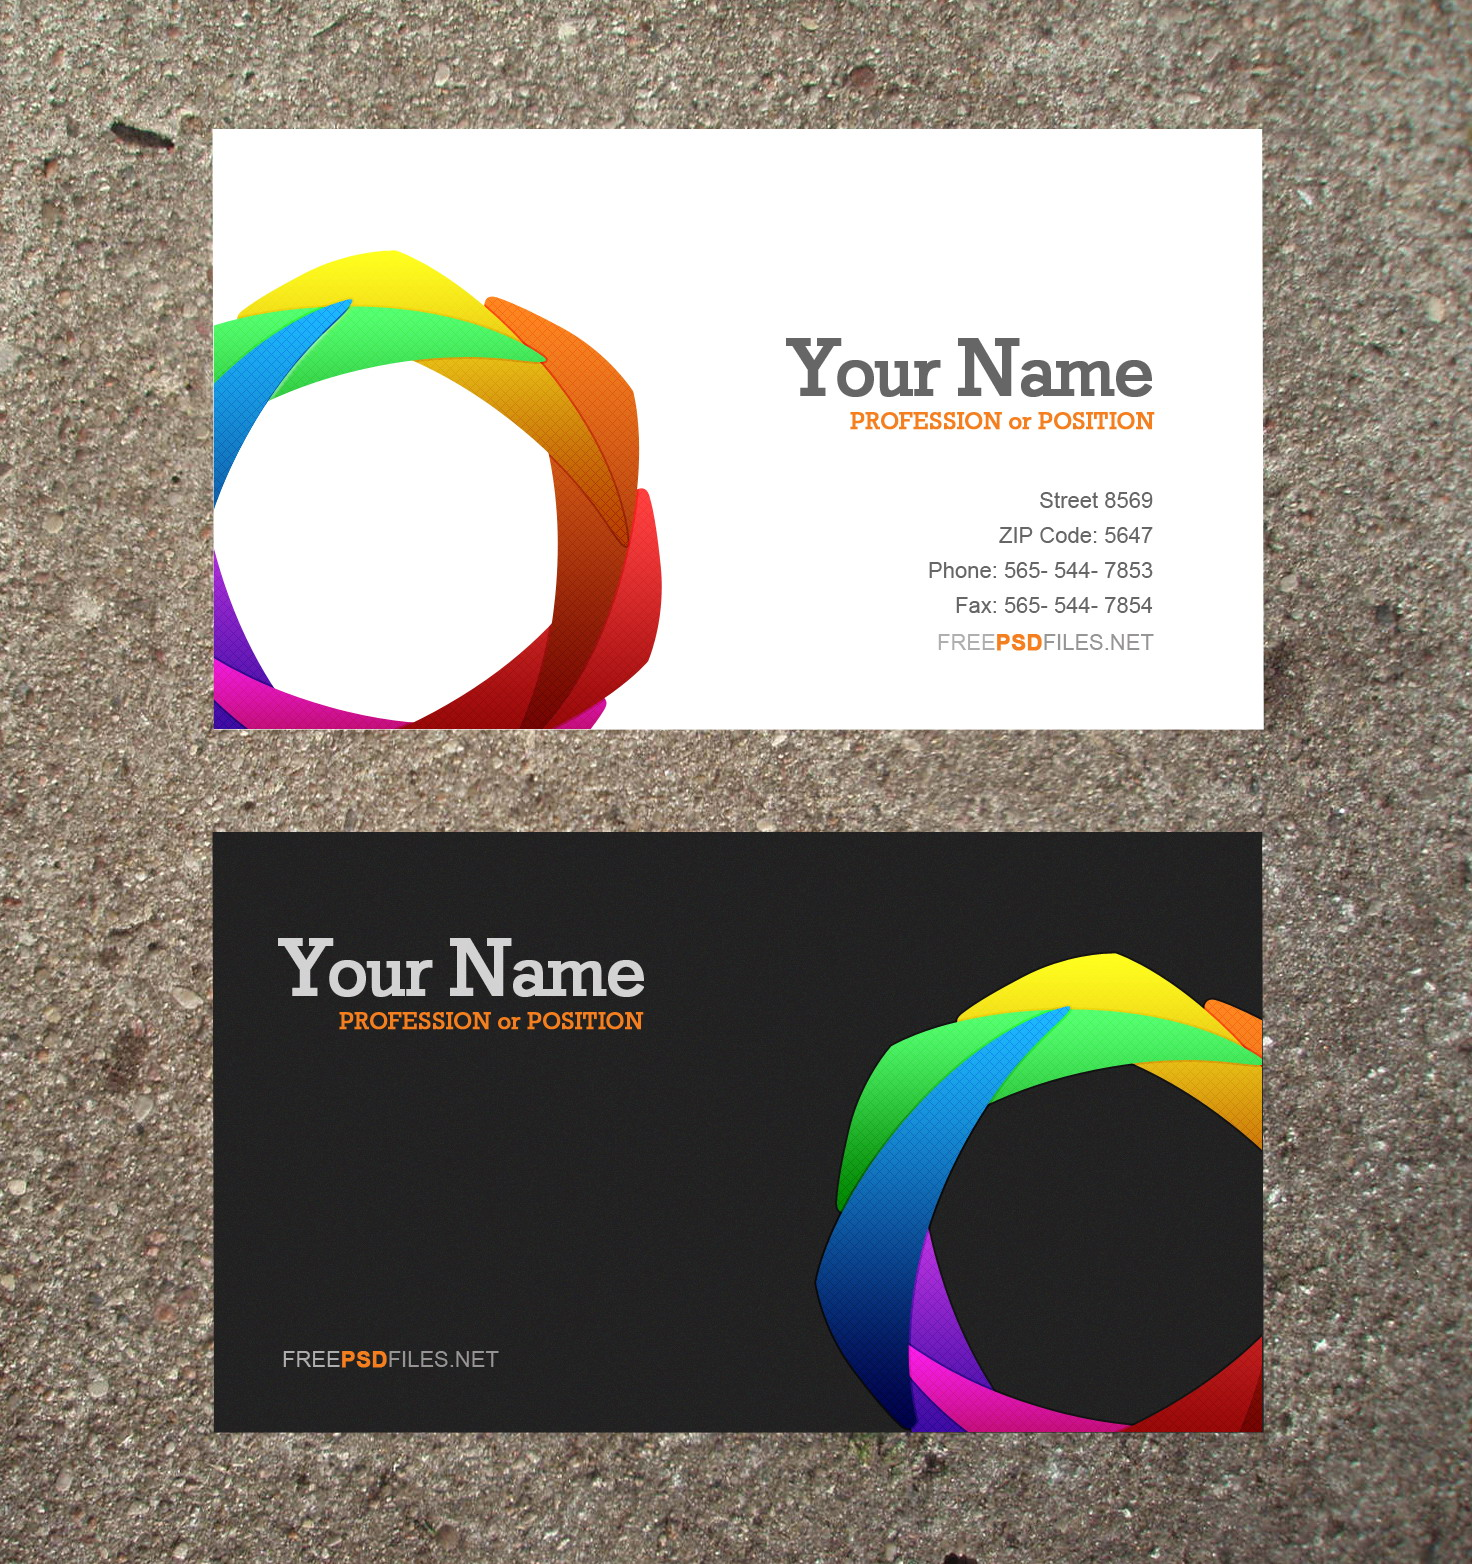 Template for business cards free download dawaydabrowa template for business cards free download flashek Choice Image